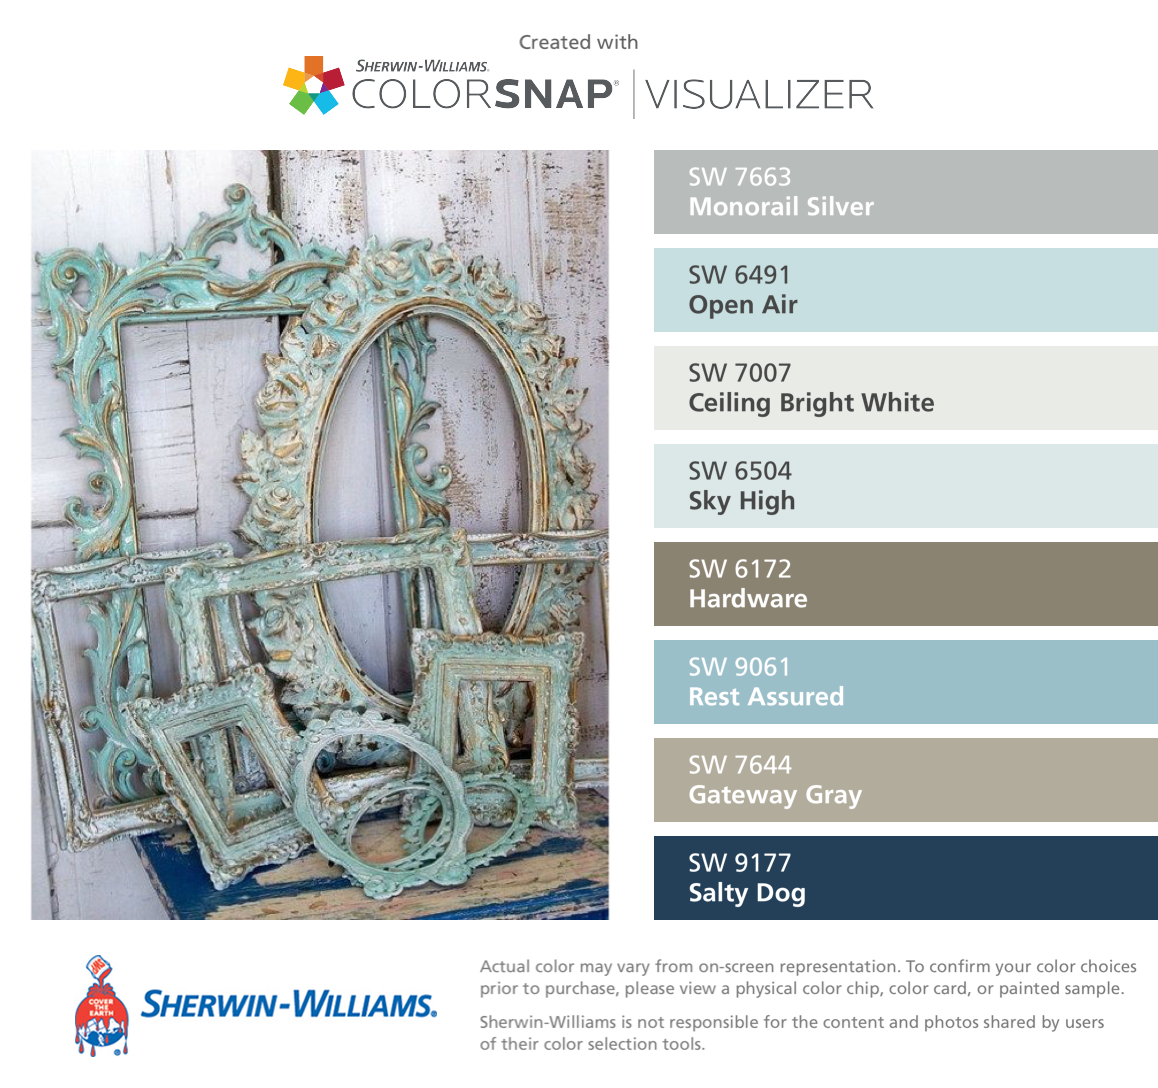 I Found These Colors With Colorsnap Visualizer For Iphone By Sherwin Williams Monorail Silver